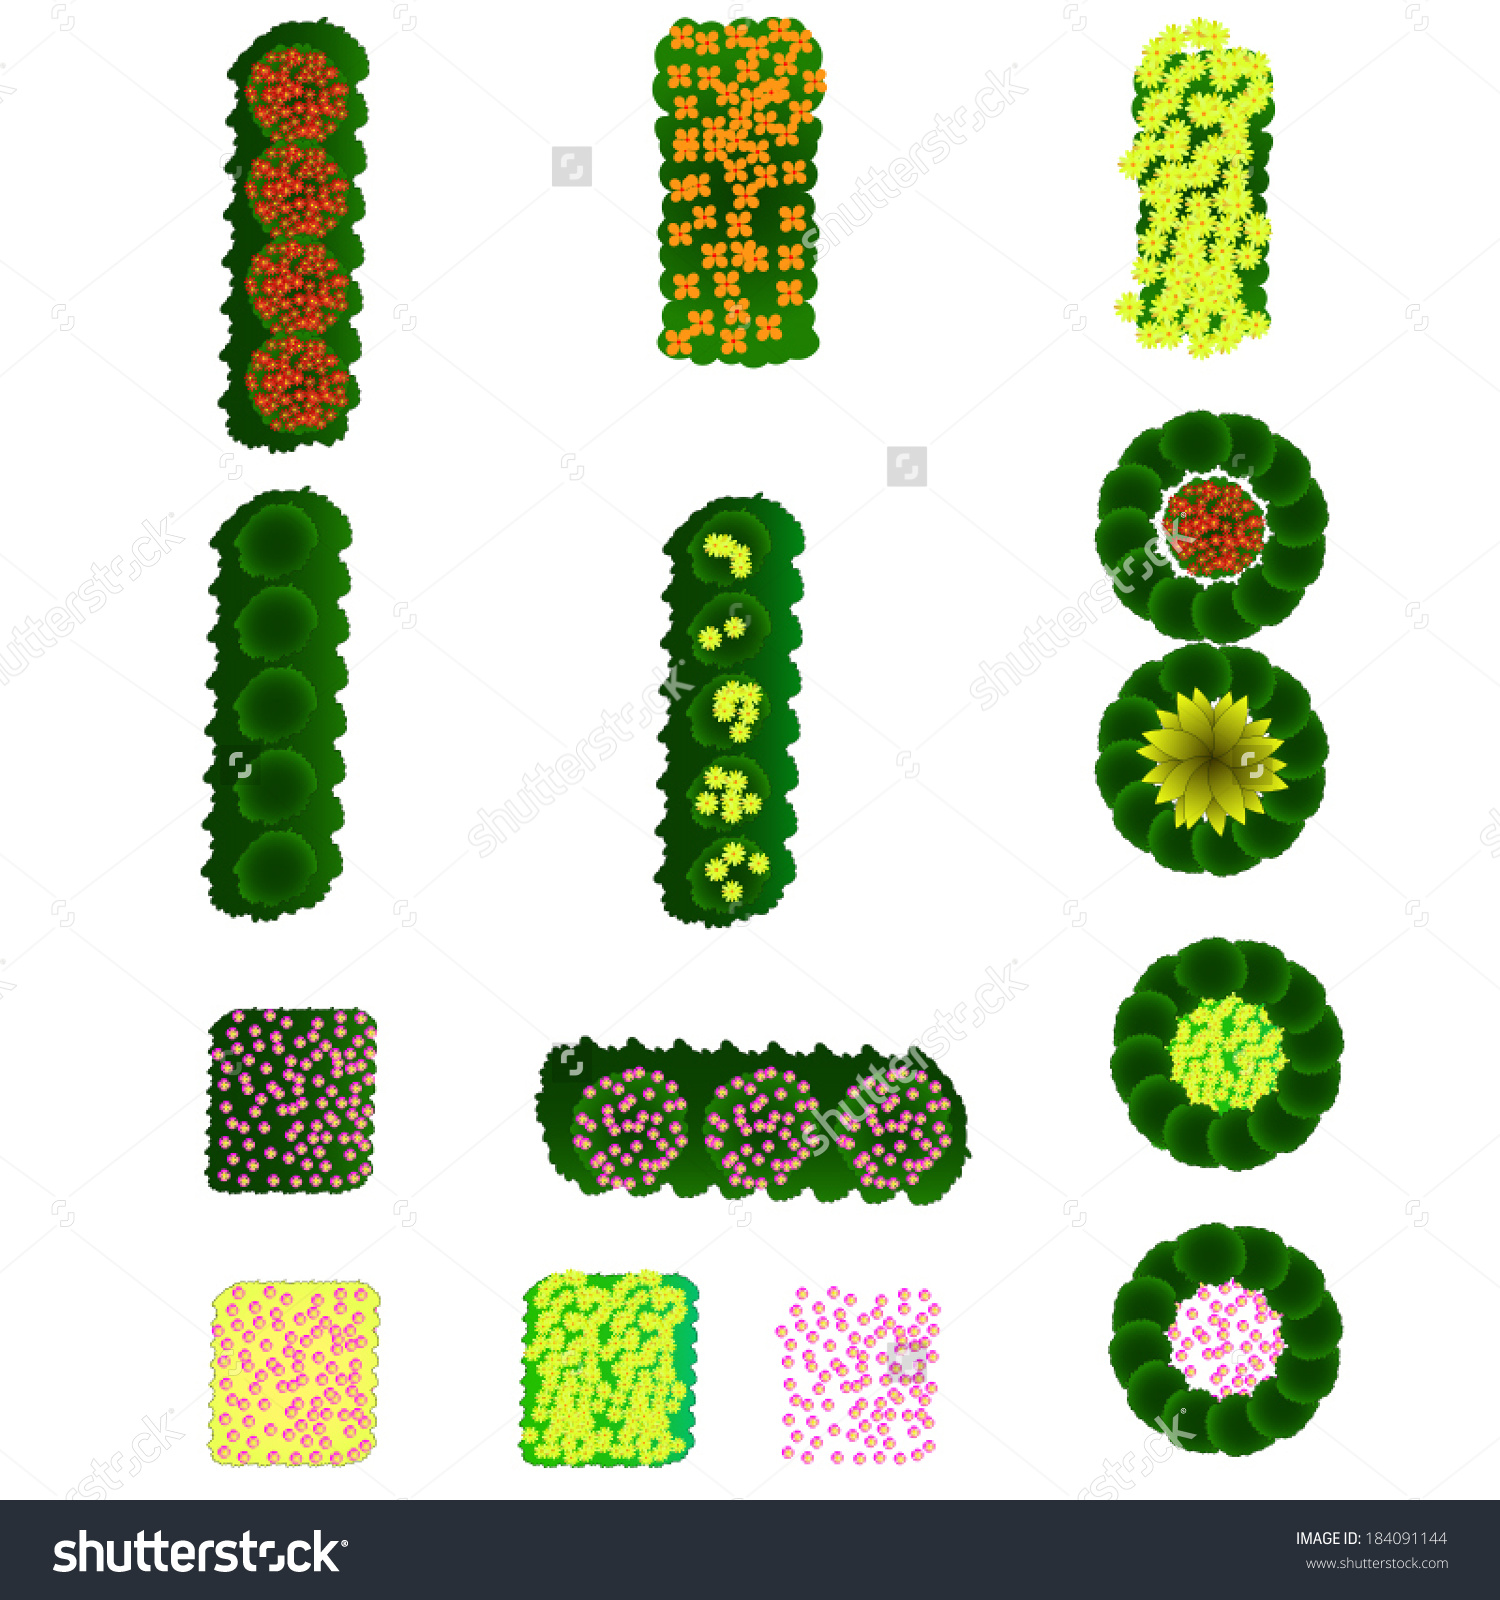 Interesting Trees Plant Flower Grass Item Top Stock Vector With Tree Plan View